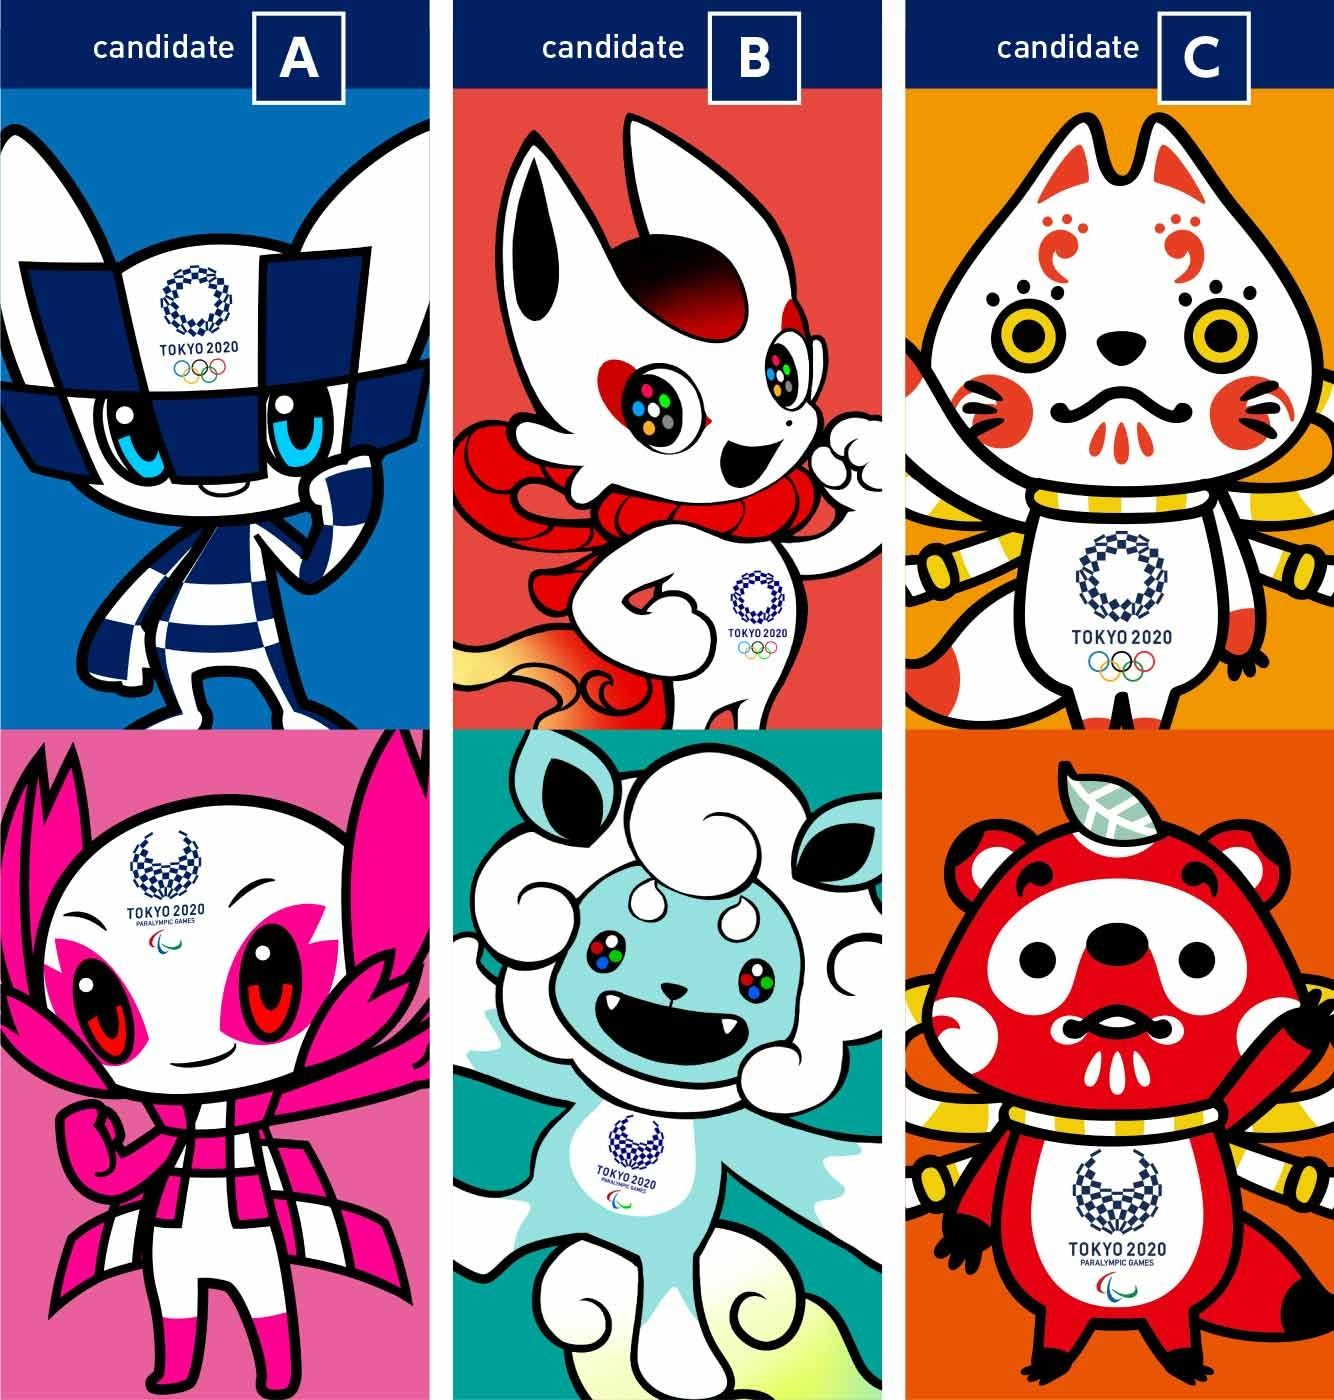 The Tokyo 2020 Olympic Mascot Candidates Unveiled